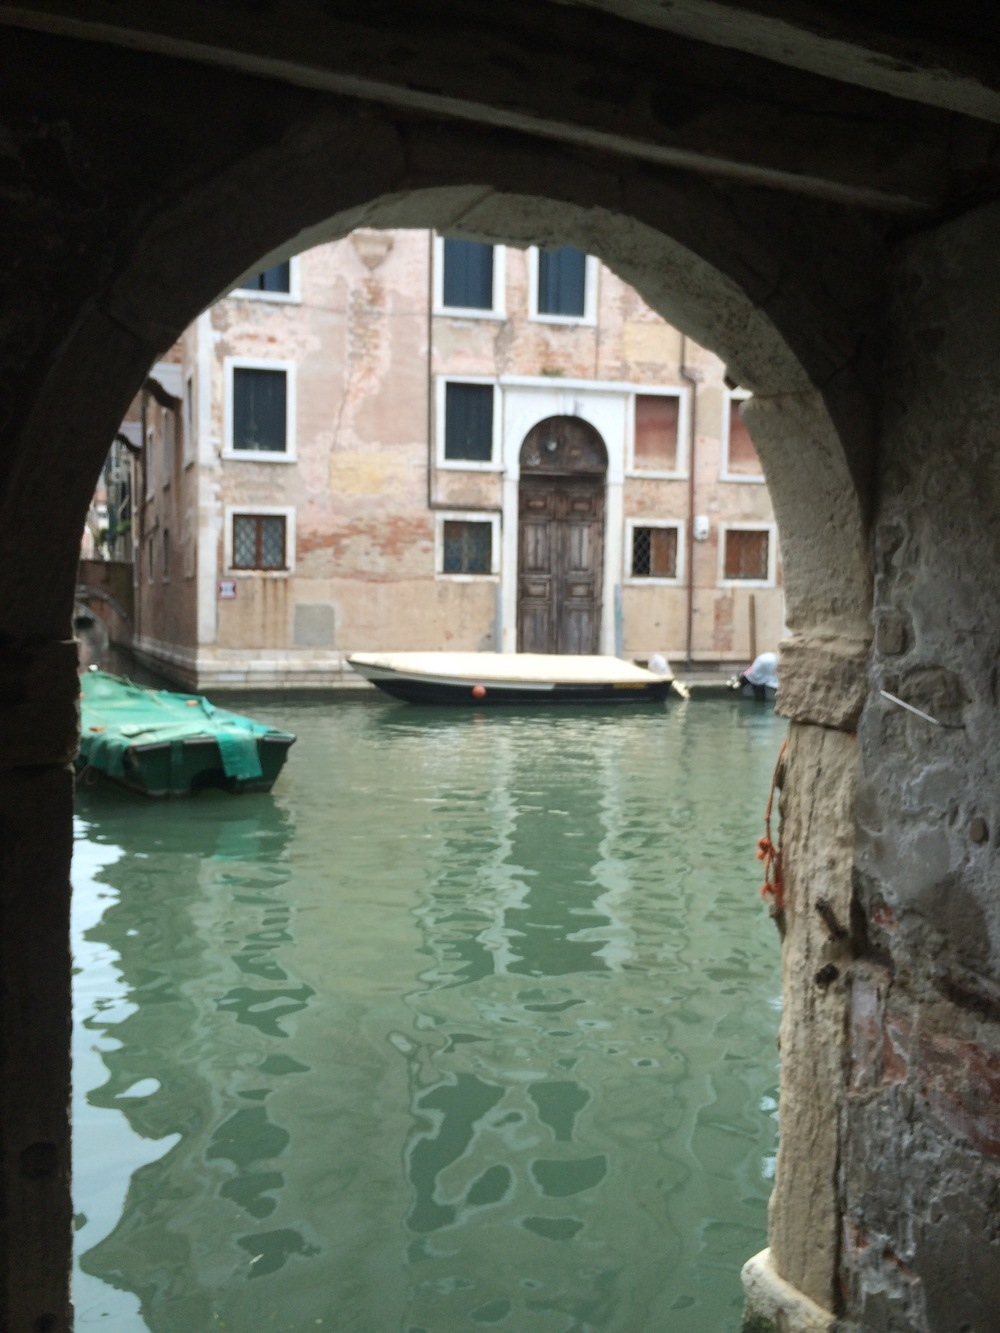 Then to Venice, water everywhere and amazingly beautiful, you catch your breath every time you turn a corner.